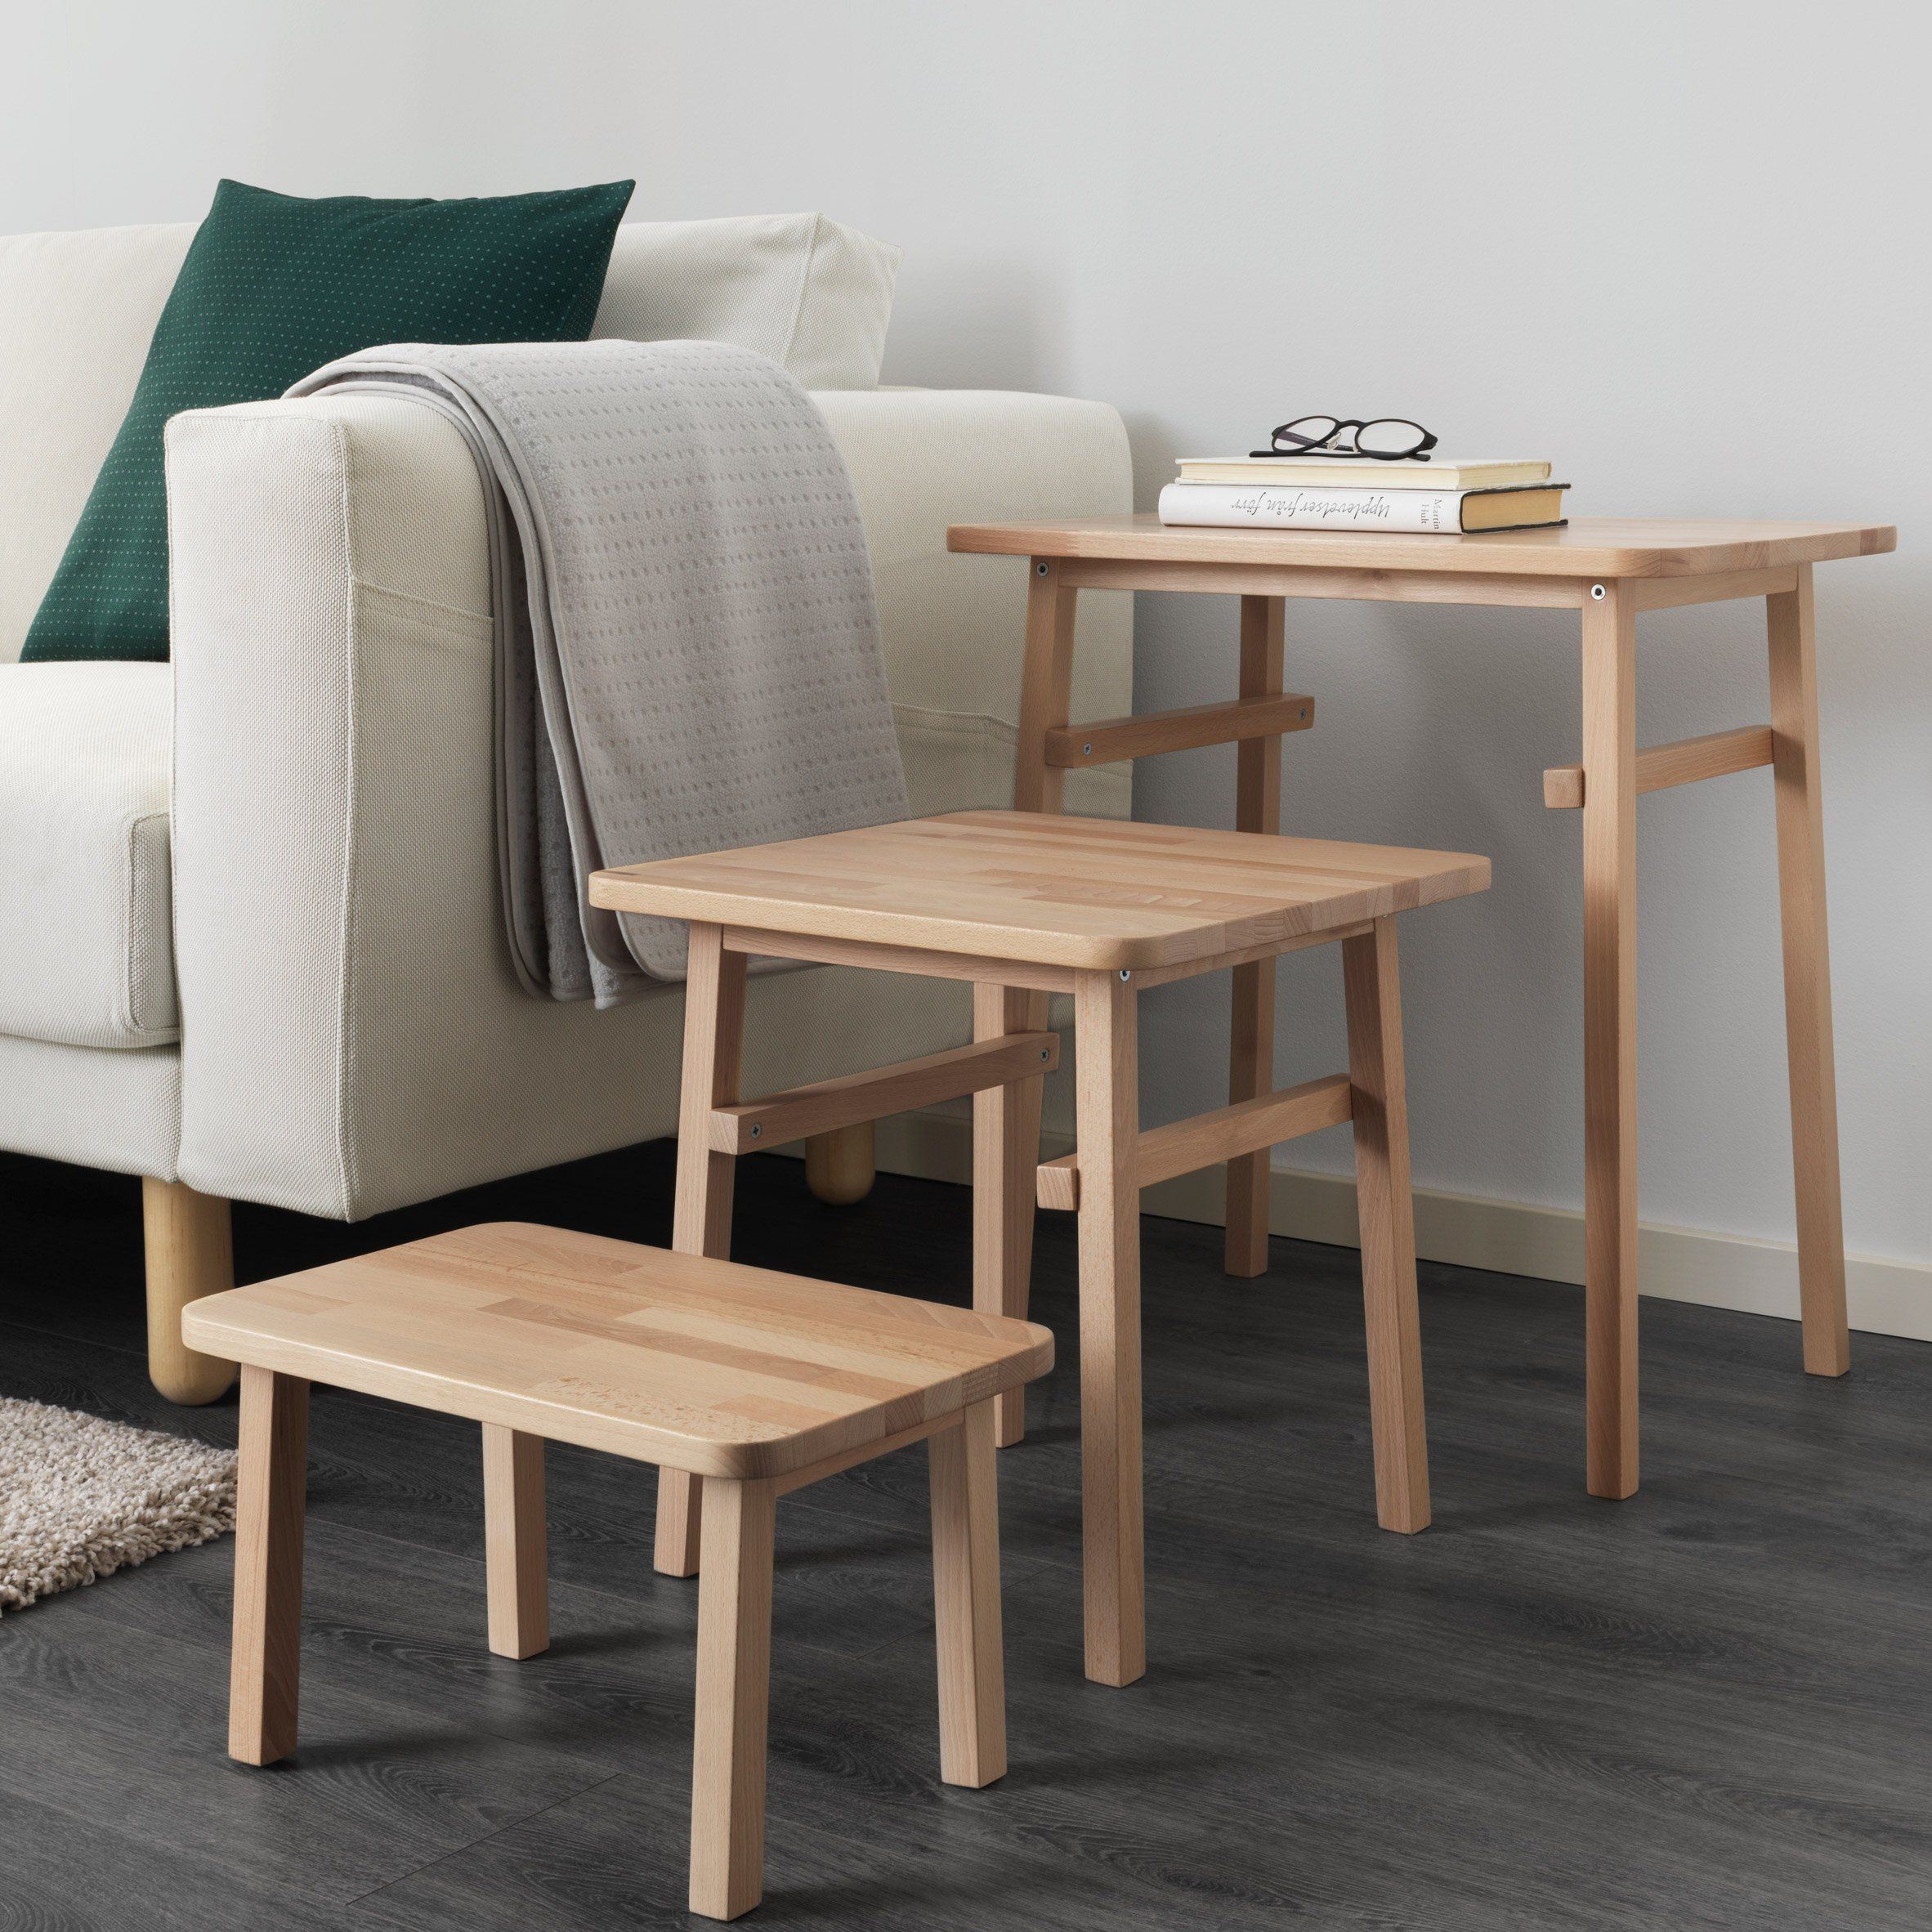 Ikea And Hay Collab Launching In Fall Gets Fresh Photos Curbedclockmenumore Arrow The Swedish And Danish Design Br Furniture Ikea Ypperlig Home Furnishings [ 2364 x 2364 Pixel ]